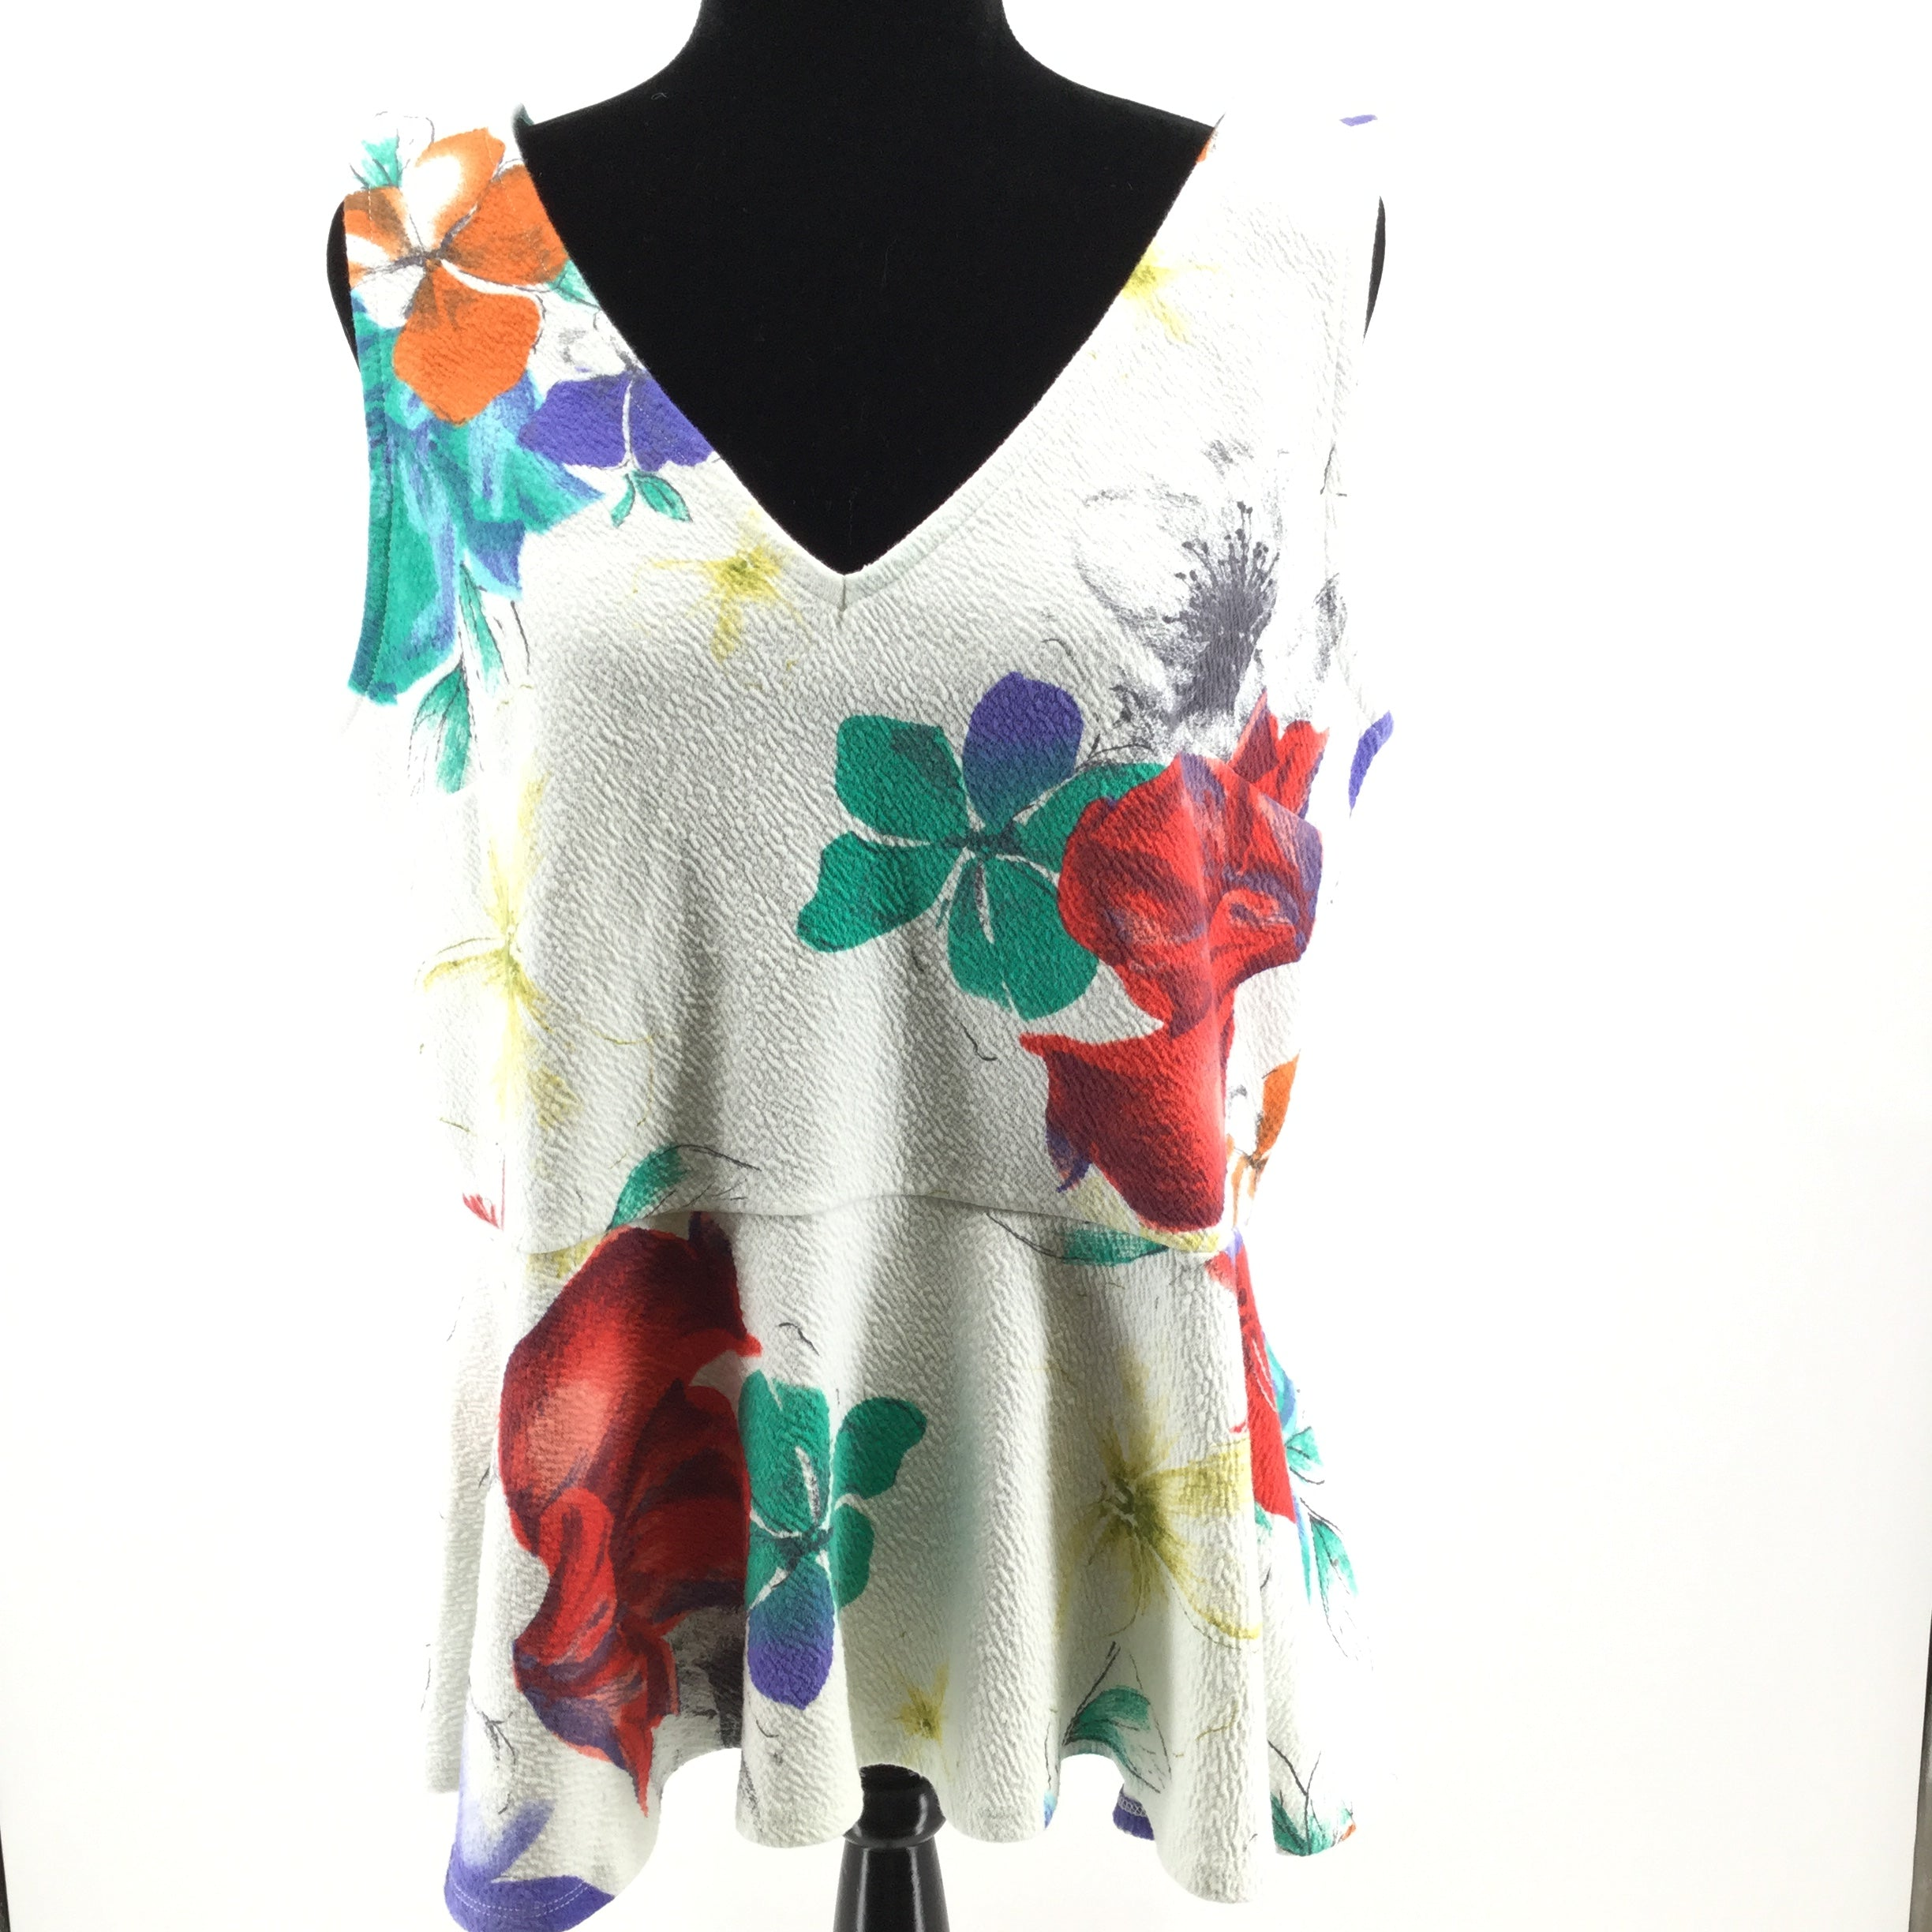 APPAREL,TOPS - SLEEVELESS TOP WITH RUFFLED BOTTOM AND TIE BACK. 70% COTTON. 28% POLYESTER. 2% SPANDEX. MACHINE WASH COLD.